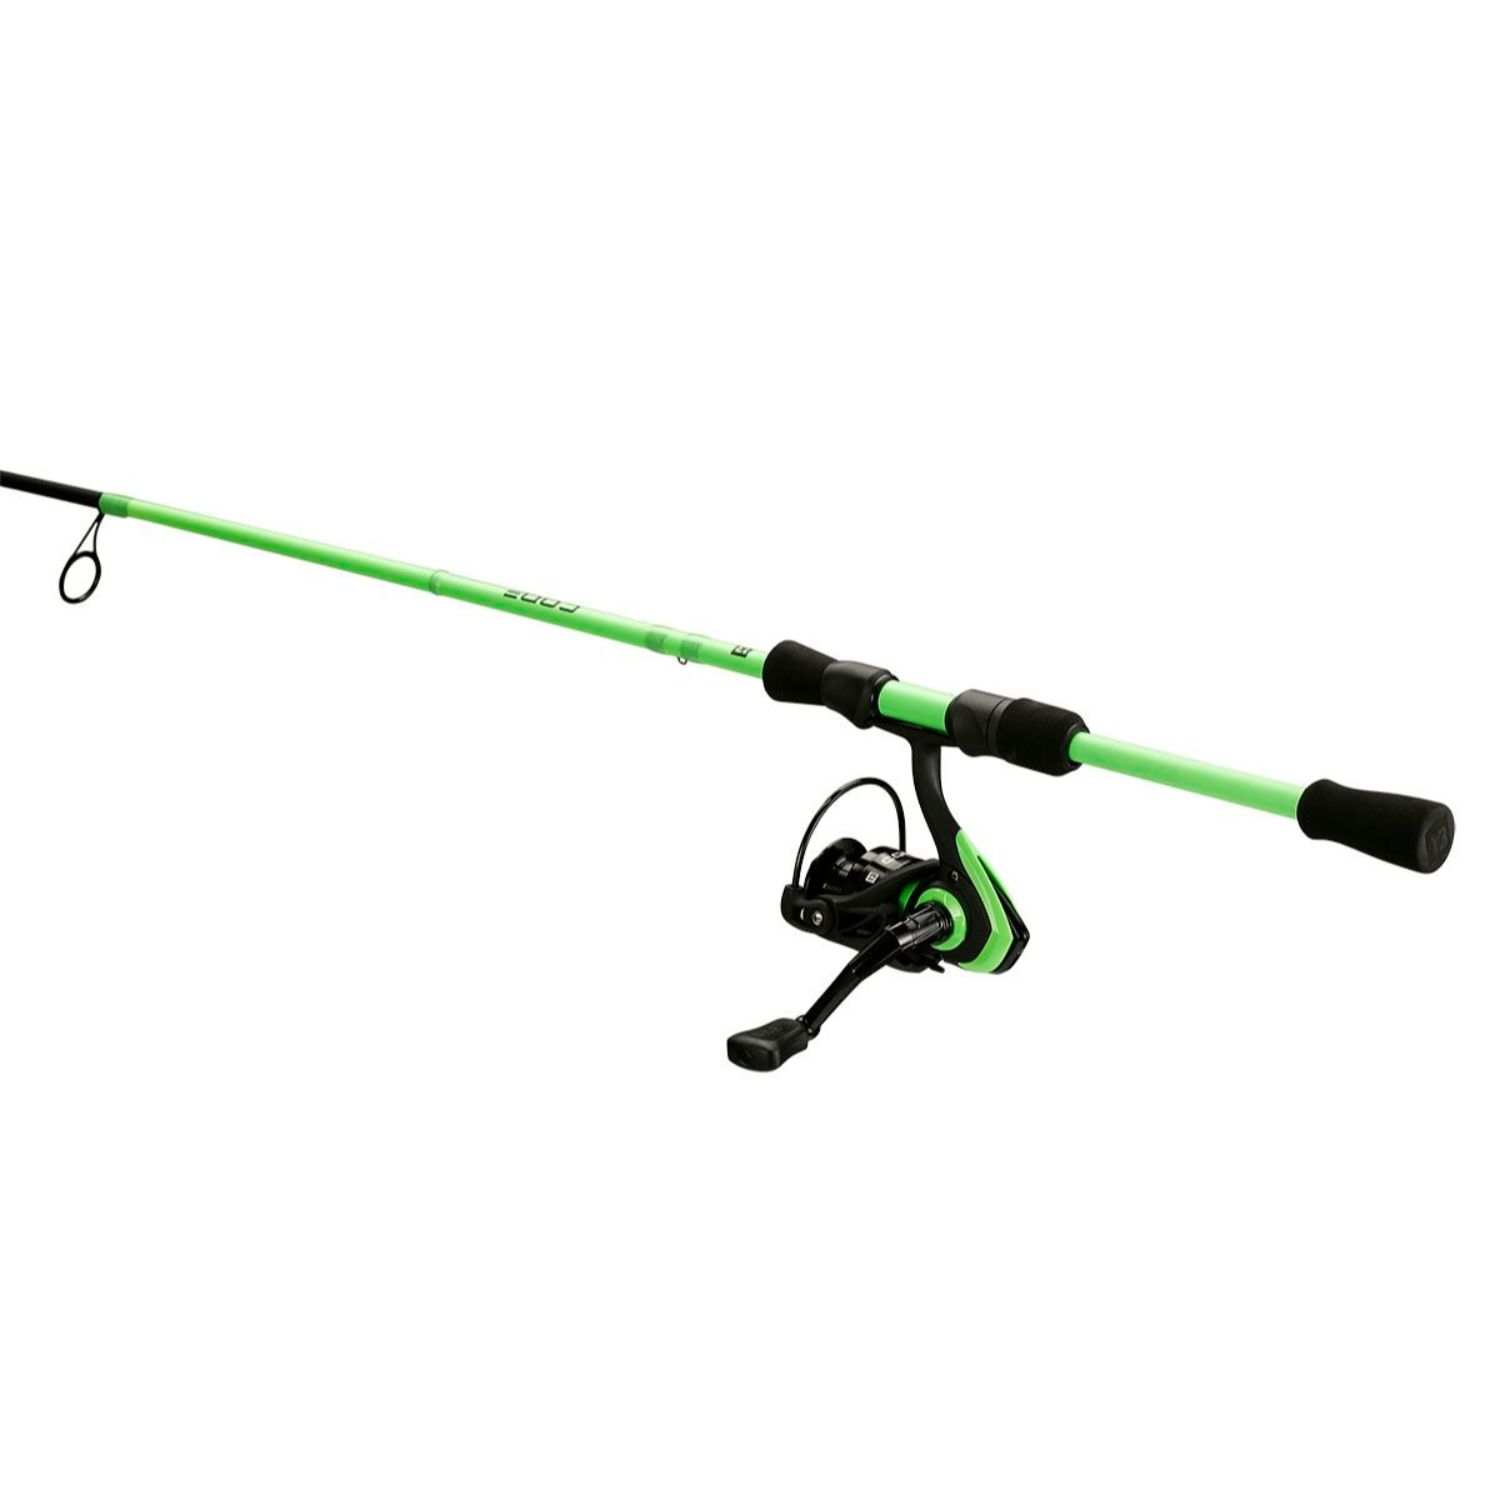 13 Fishing Code Neon 6 ft 7 in MH Spinning Combo